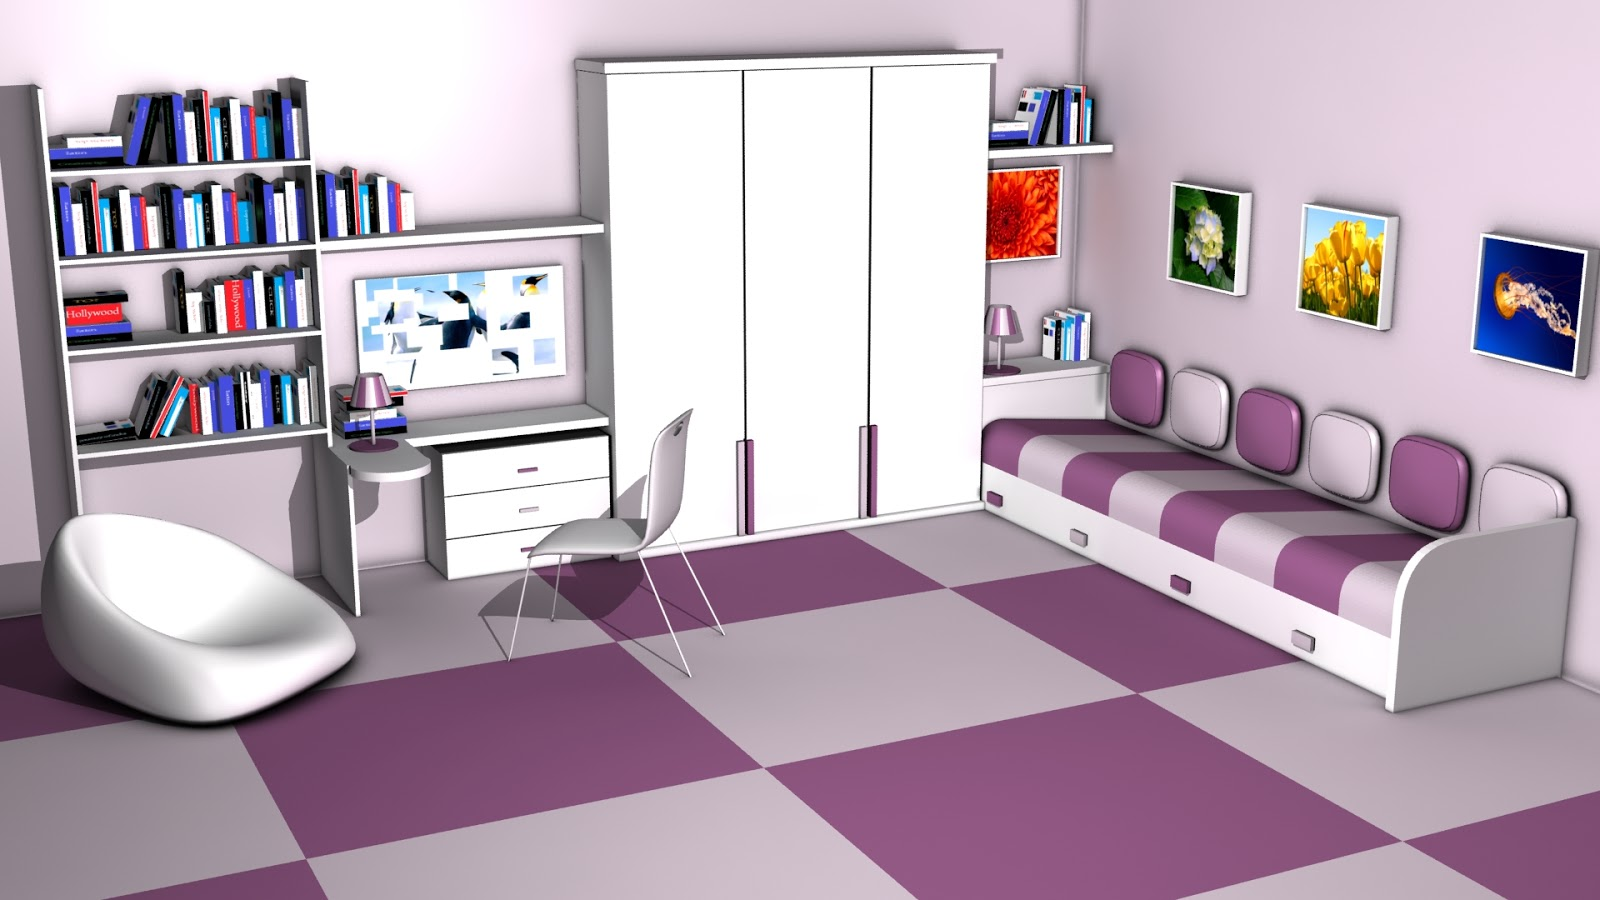 Sajid Designs Room Interior Design 3ds Max: create a 3d room